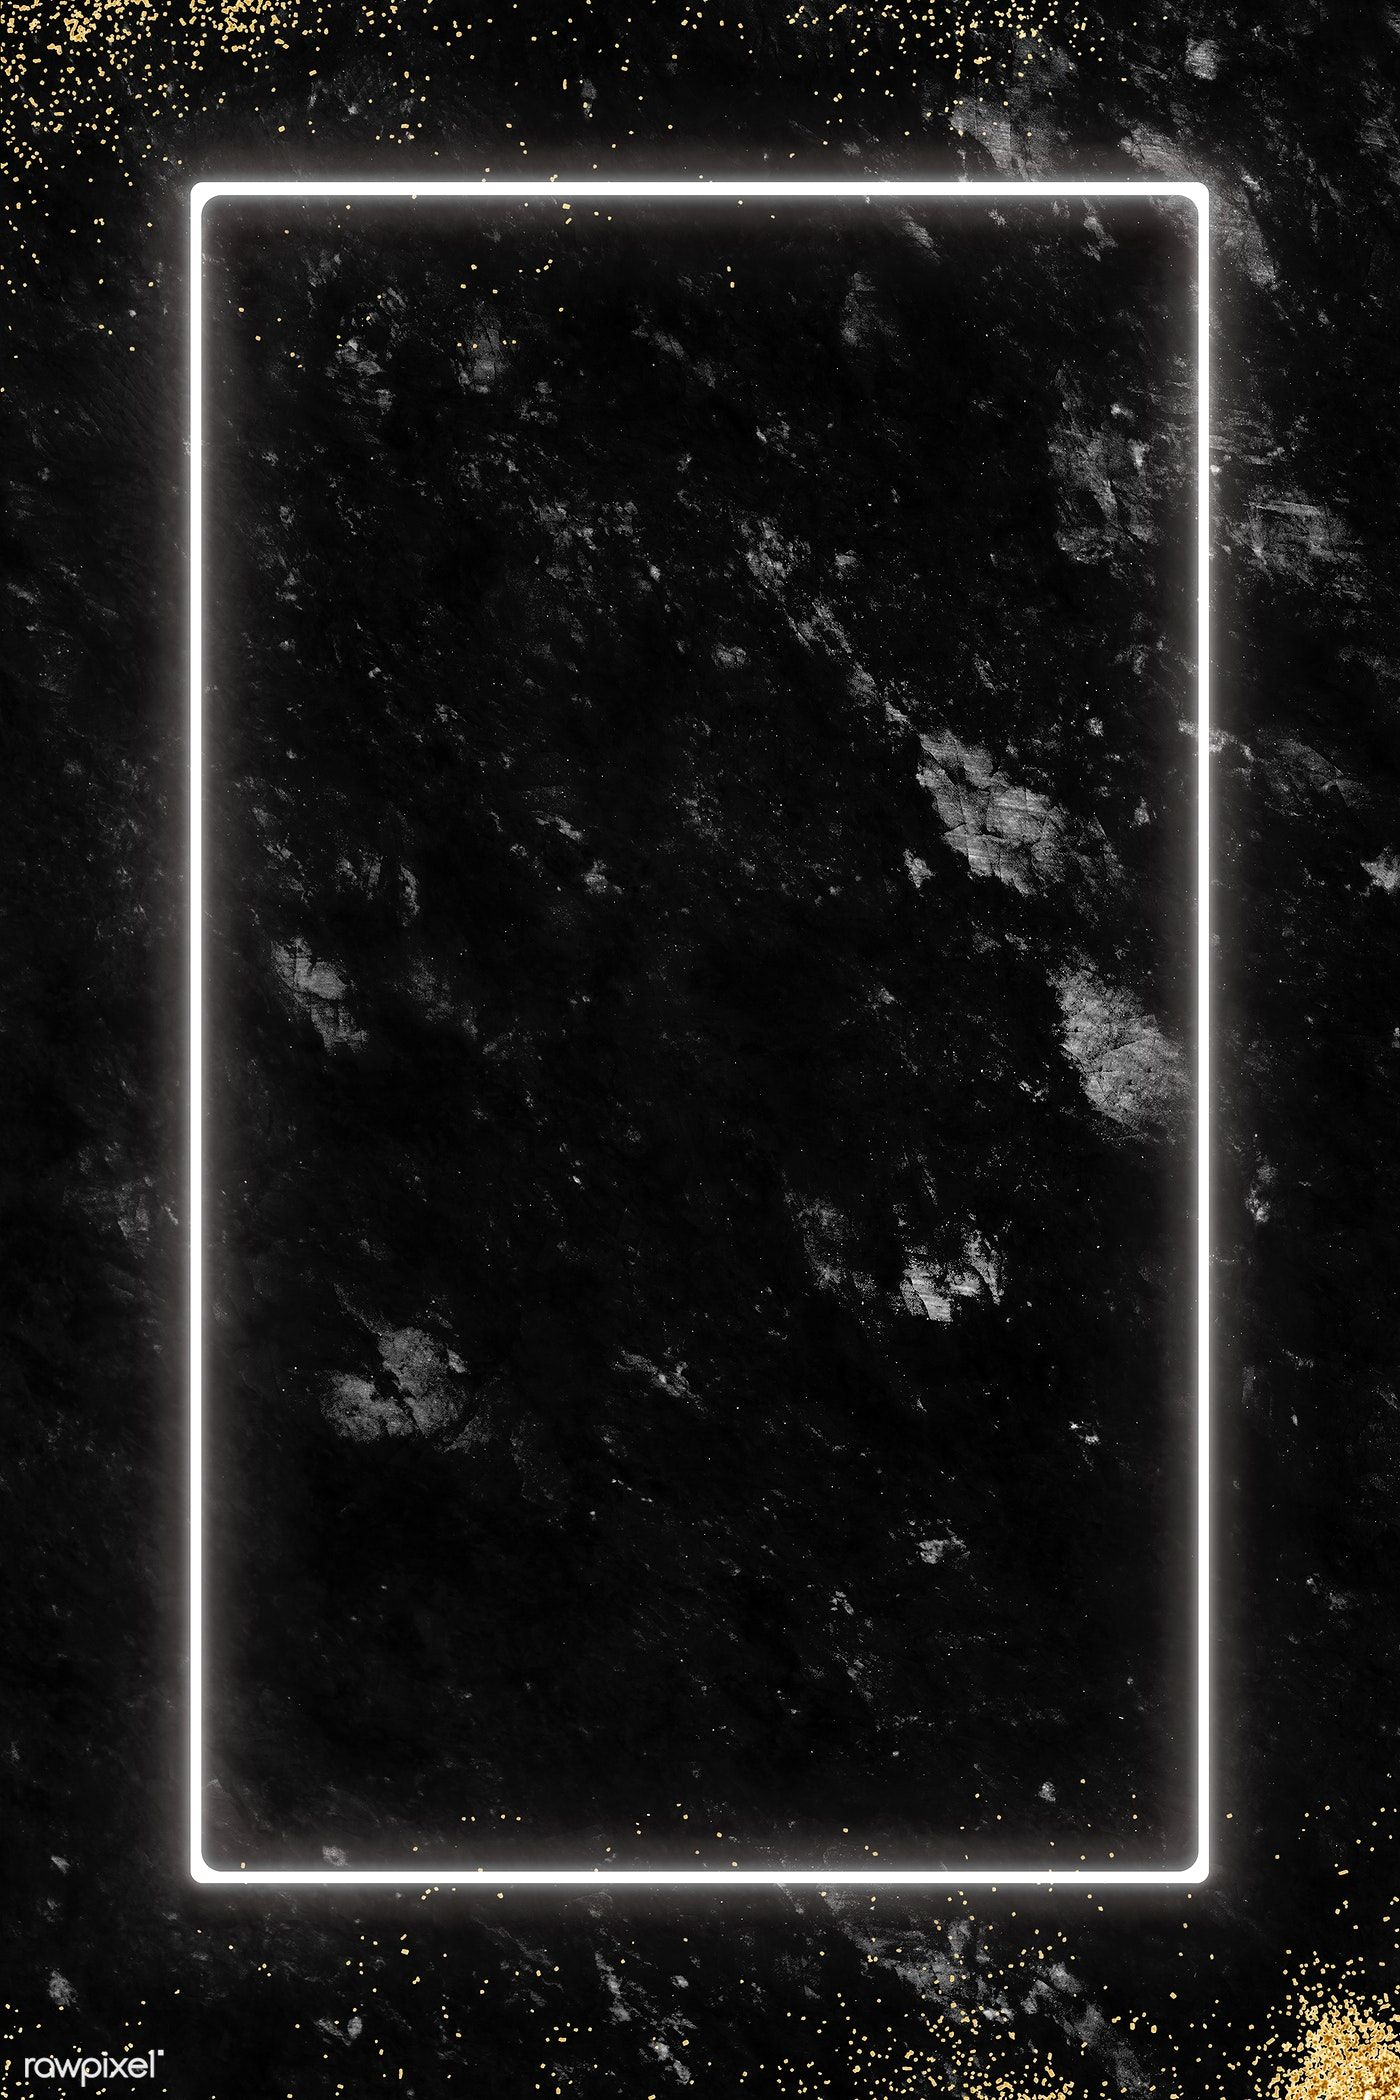 List of the Good of Blank Black Wallpaper for Samsung This Month from rawpixel.com